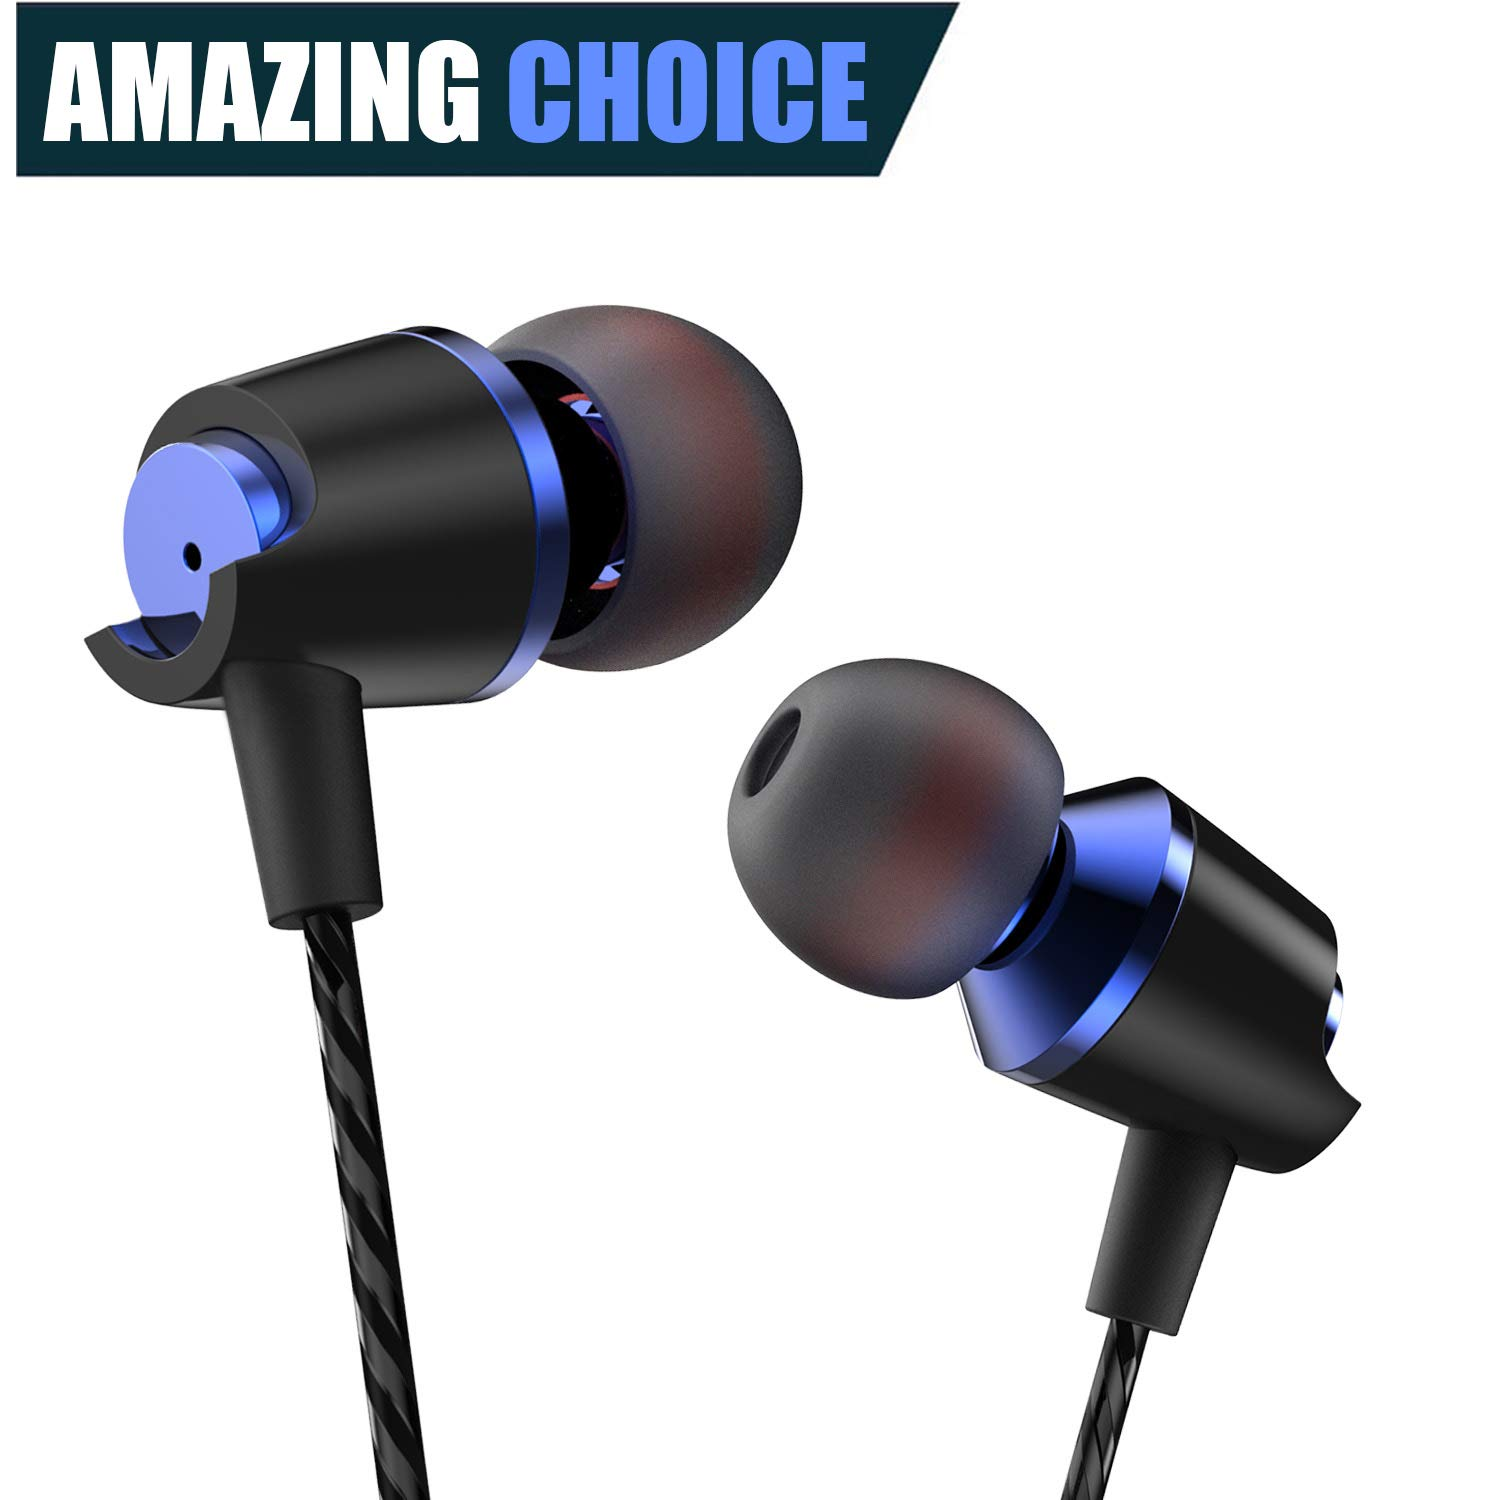 Earbuds Ear Buds in Ear Headphones Wired Earphones with Microphone Mic Stereo and Volume Control Waterproof Wired Earphone Android Mp3 Players Tablet Laptop 3.5mm Audio